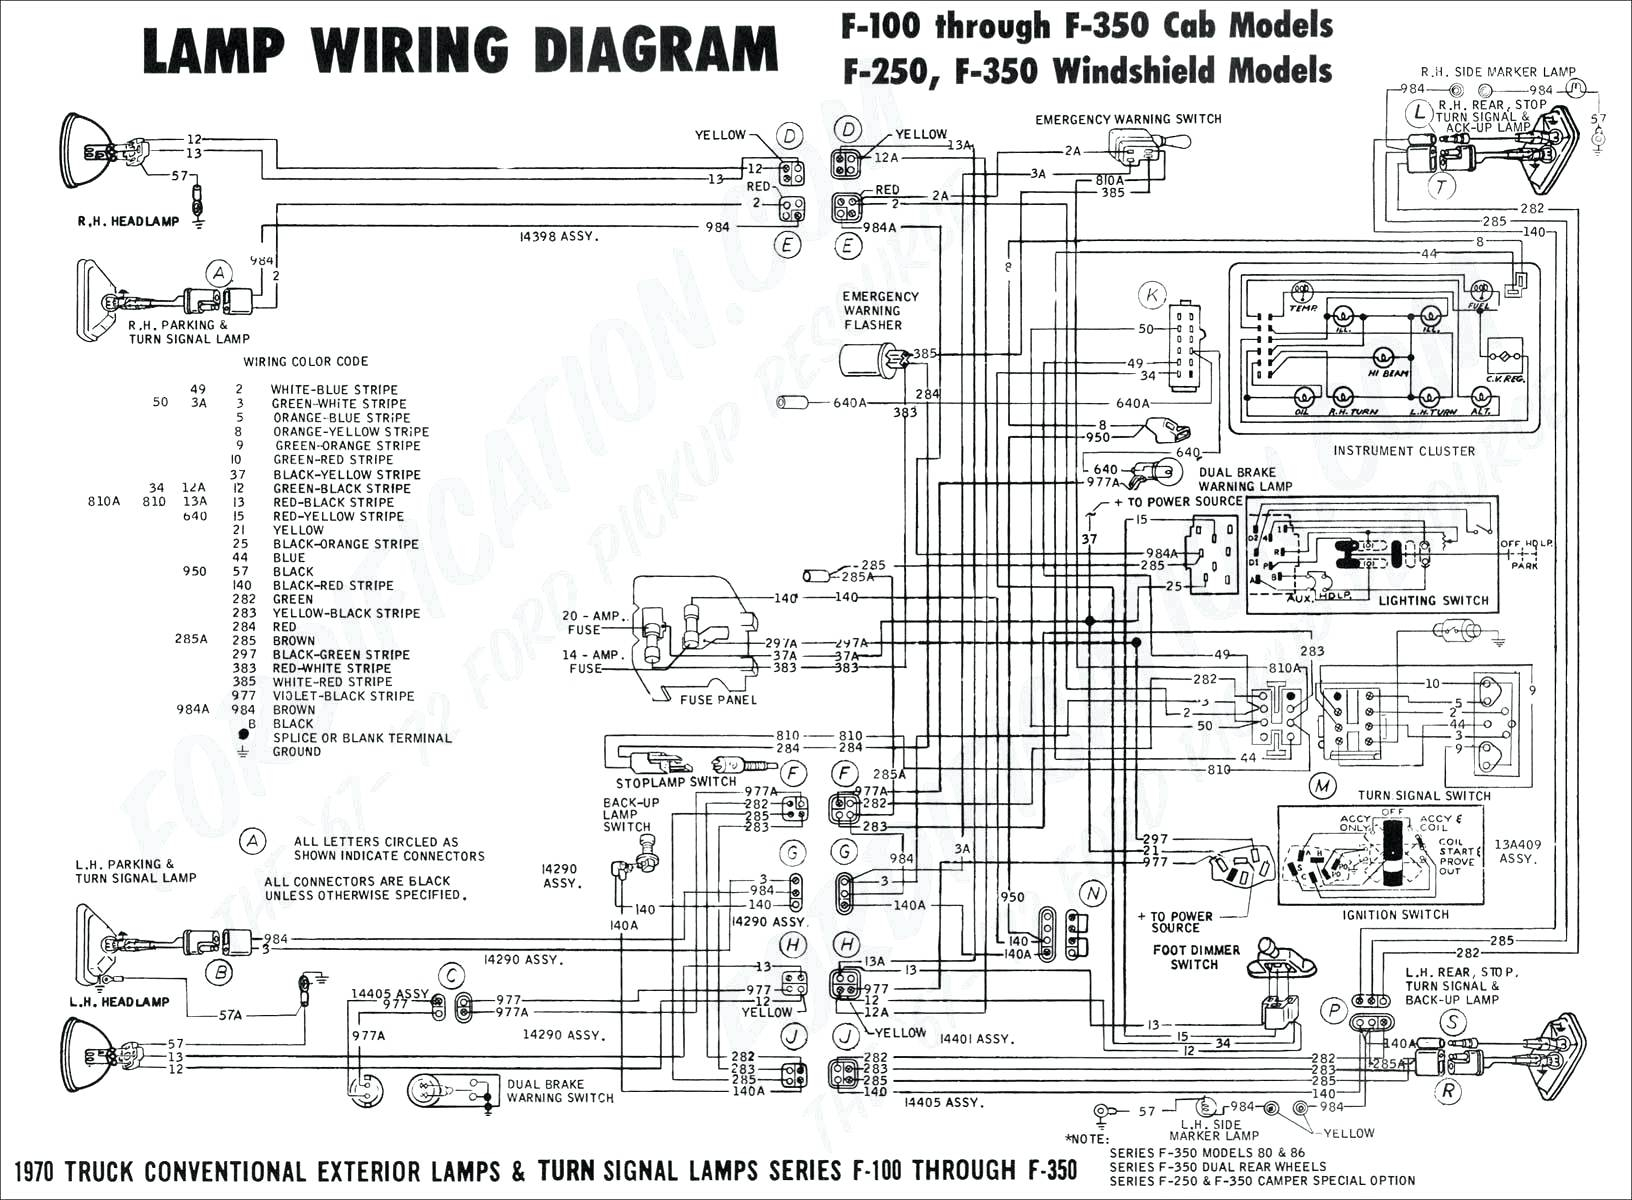 1998 Dodge Ram 1500 Wiring Schematic Wiring Diagram